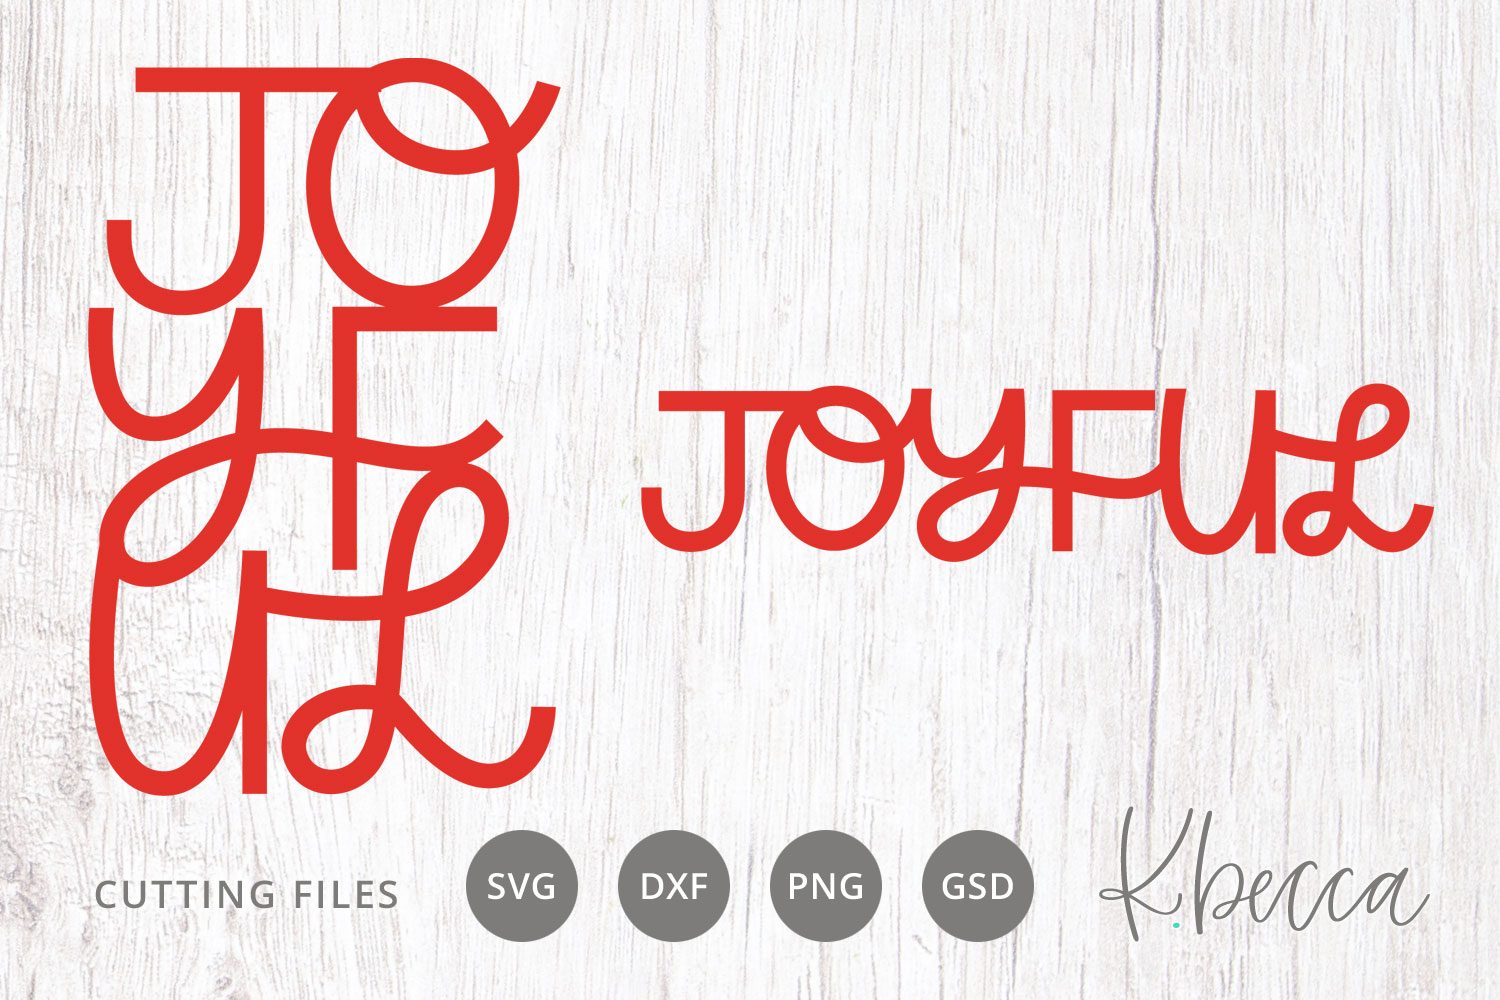 Joyful Christmas SVG Cut Files example image 1